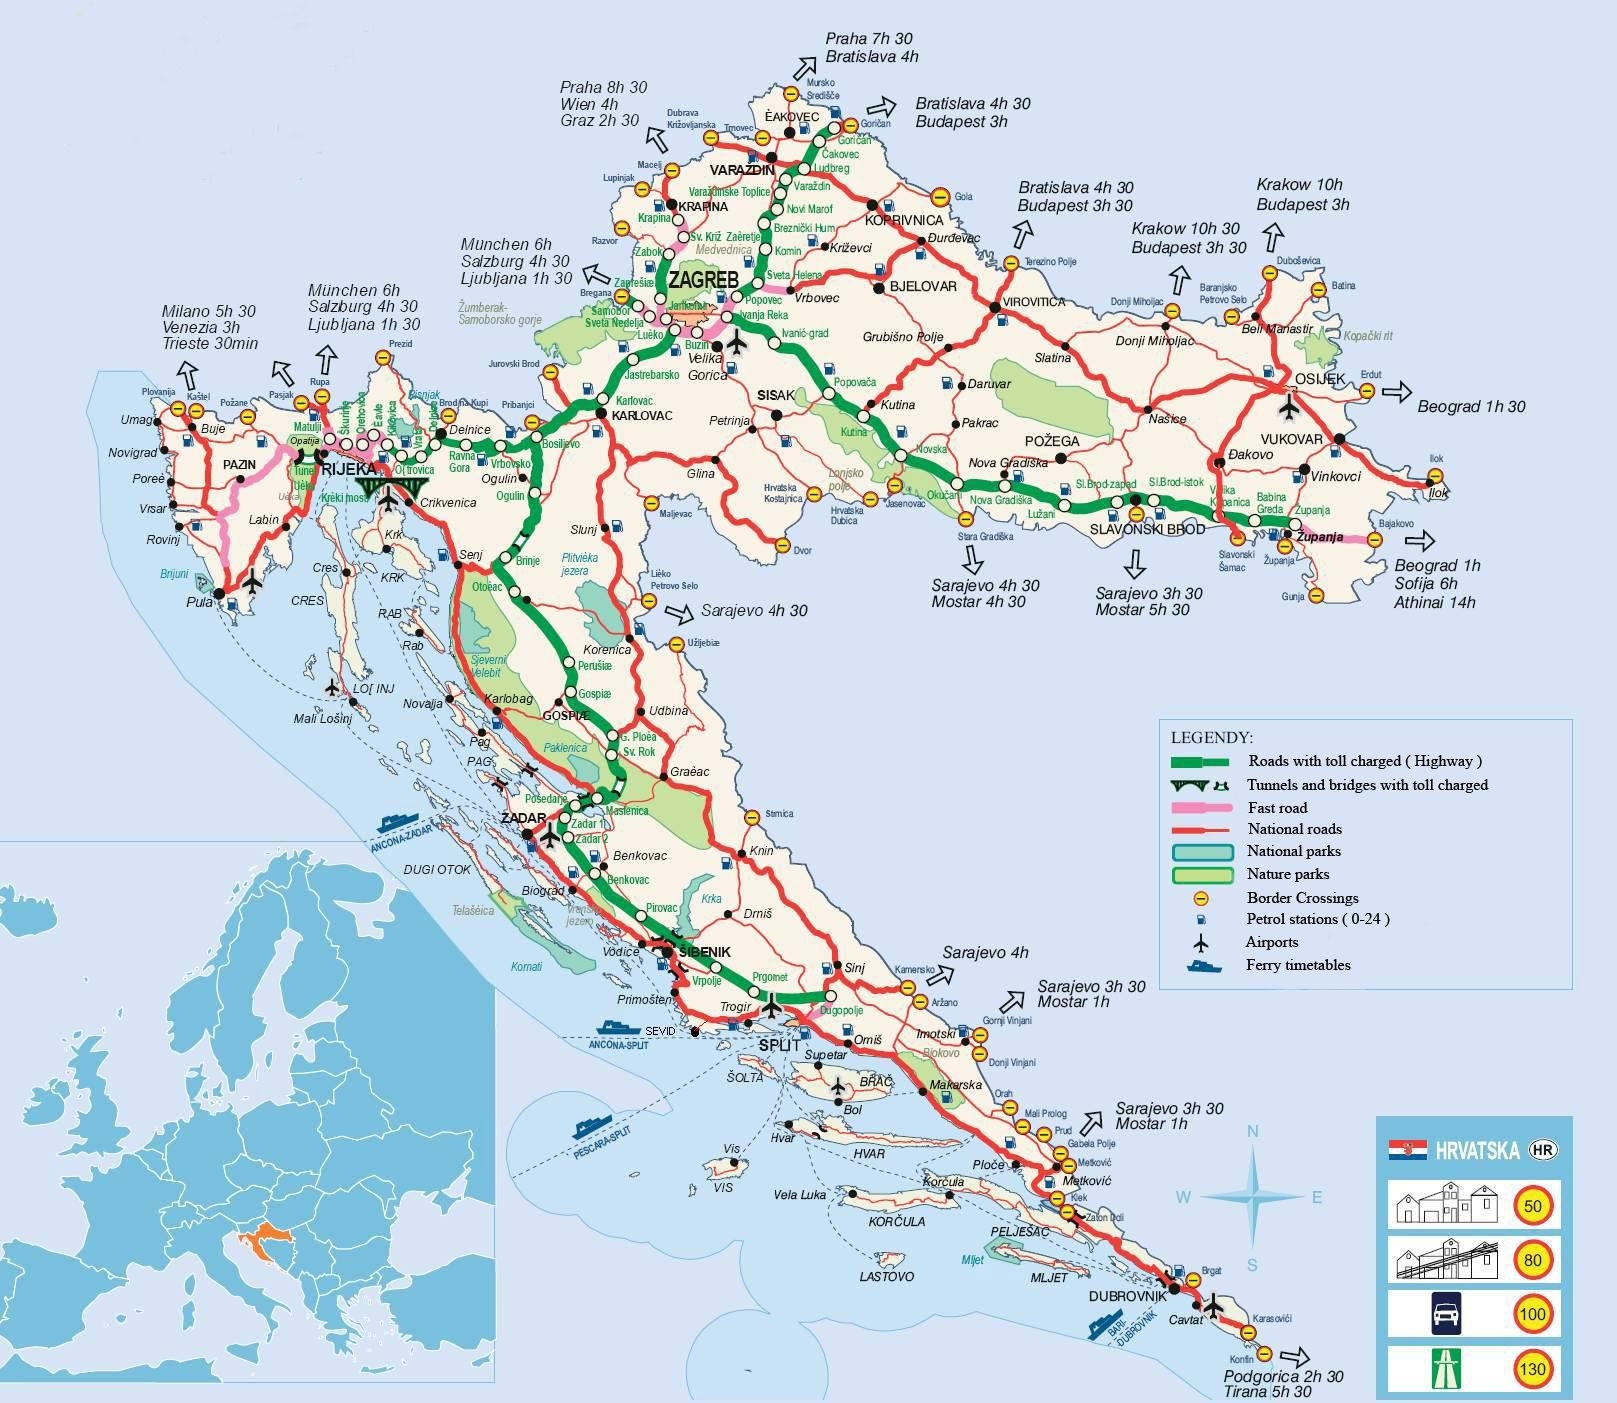 Croatia road map | Croatia map, Tourist map, Map on italian autos, cuba autos, israel autos, peru autos, argentina autos, new zealand autos,